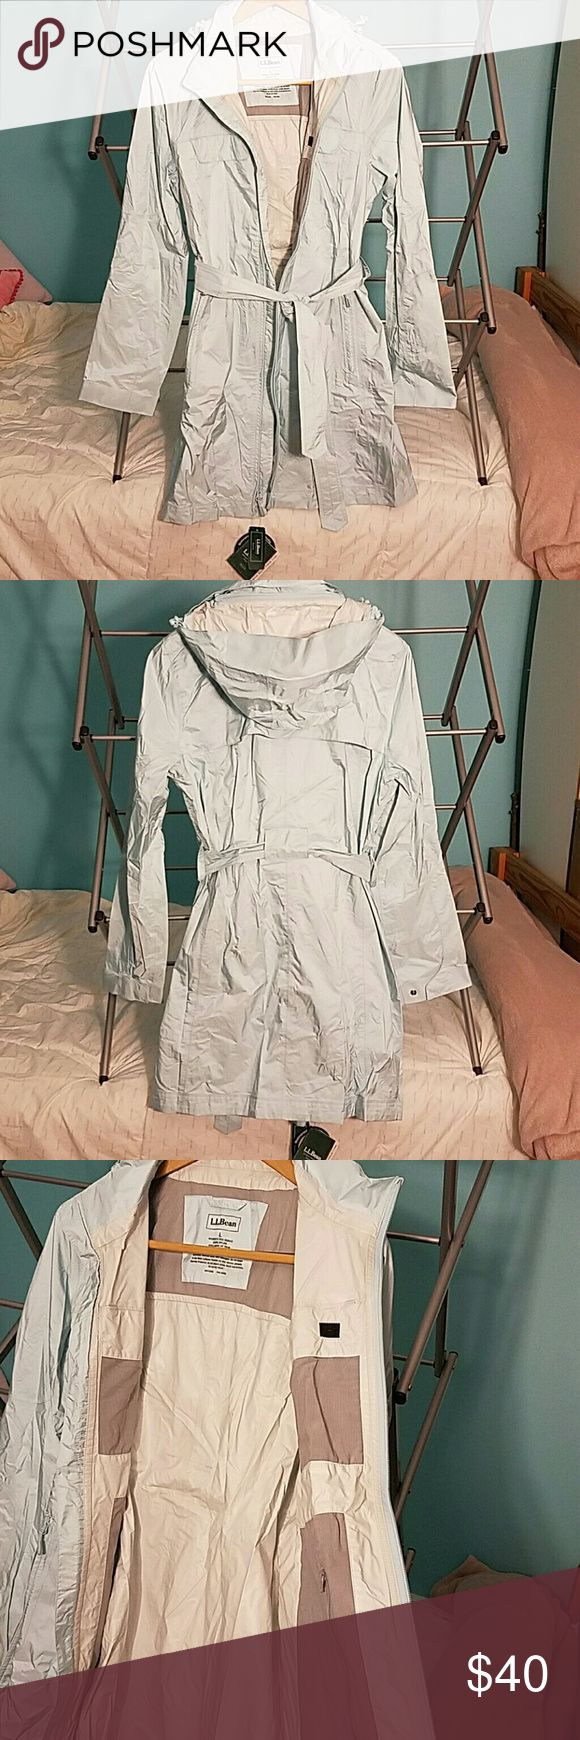 L.L.Bean light blue Rain Jacket West end trench coat. Sinches at waist for a flattering fit but will keep you dry in even the heaviest rain.  Lightweight, Waterproof, Breathable TEK 2.5 waterproof system. Has a removable hood and adjustable cuffs. Longer length offers plenty of coverage. Has 4 pockets on the outside and one inside pocket. L.L. Bean Jackets & Coats Trench Coats